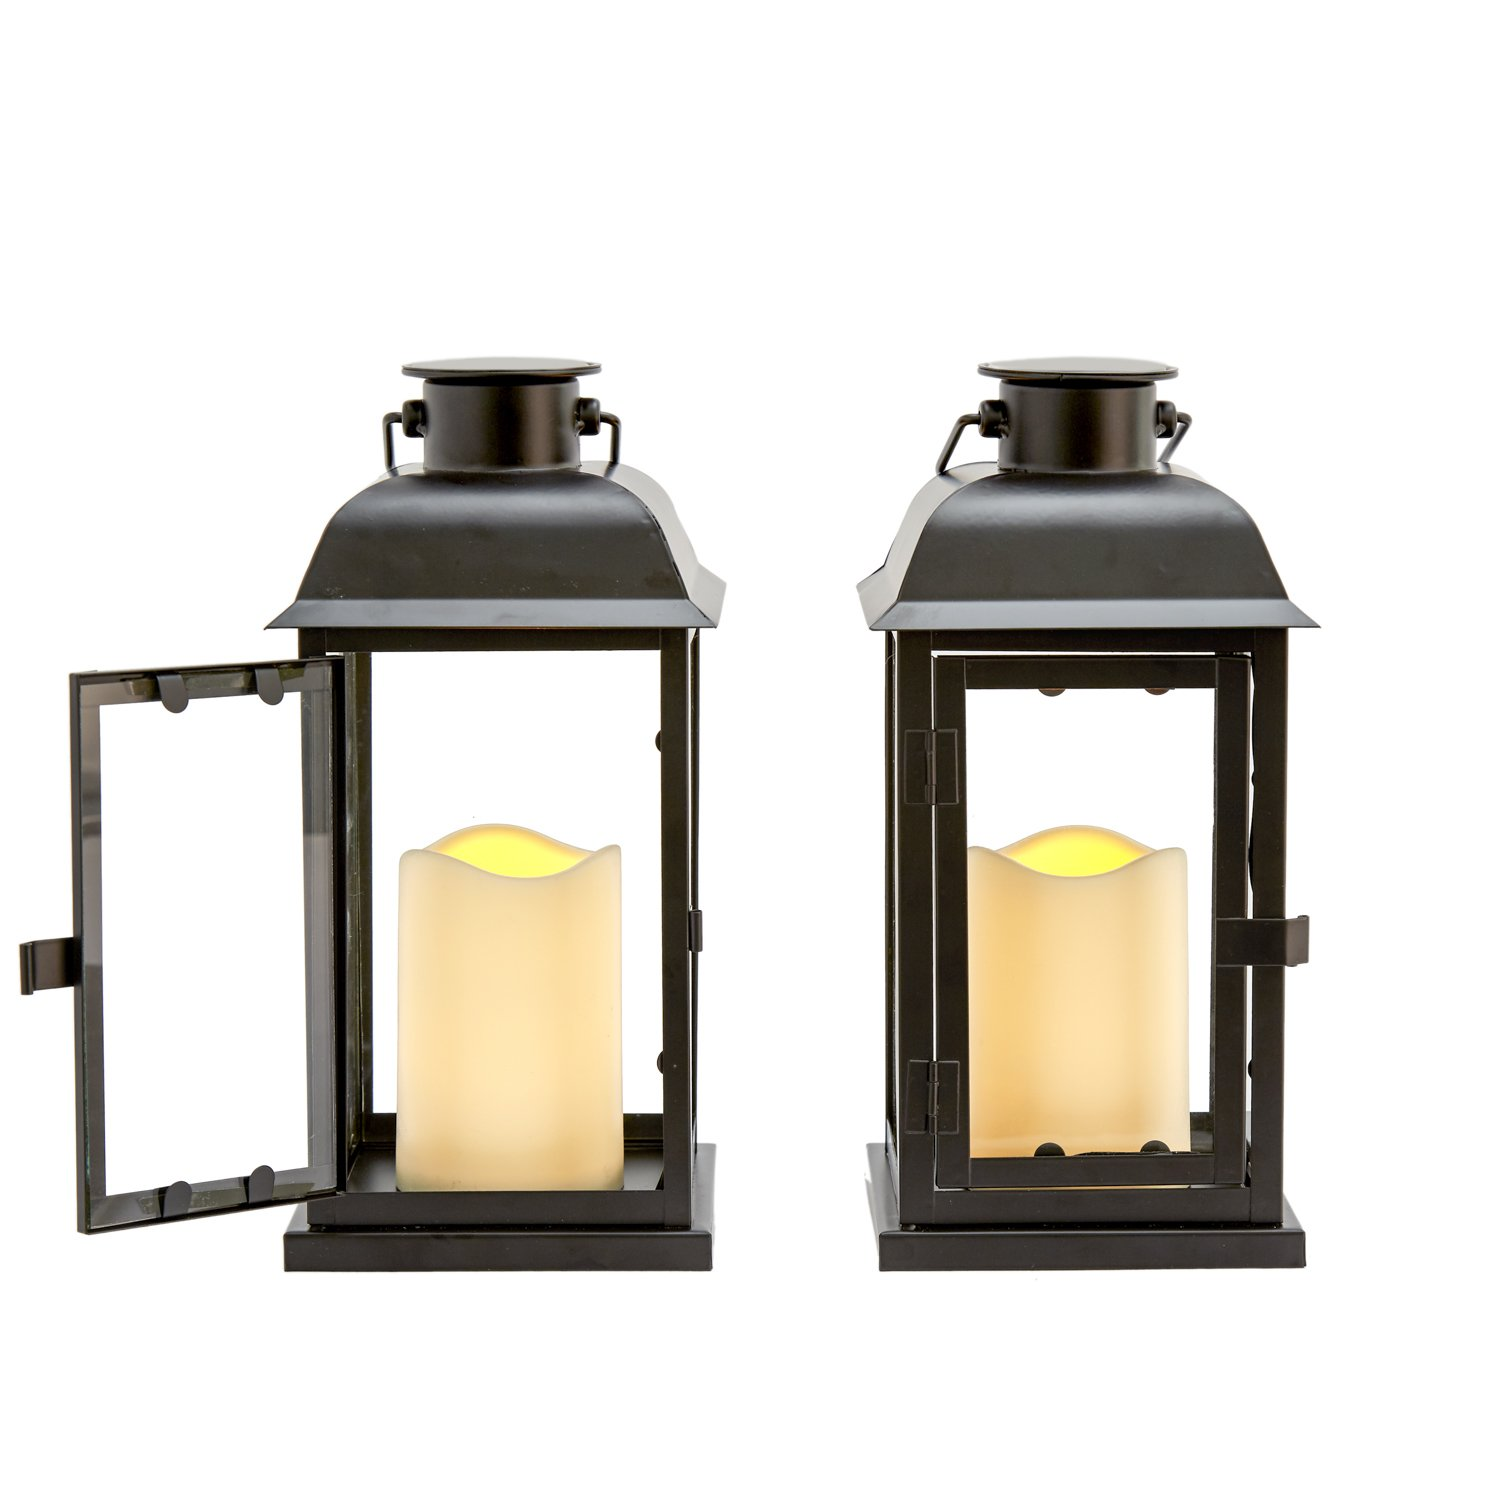 Outdoor Solar Candle Lanterns - Set of 2 Decorative Solar-Powered Lights with Dusk to Dawn Timer, 11 Inch Height, Waterproof, for Porch or Patio Decor - Rechargeable Batteries Included